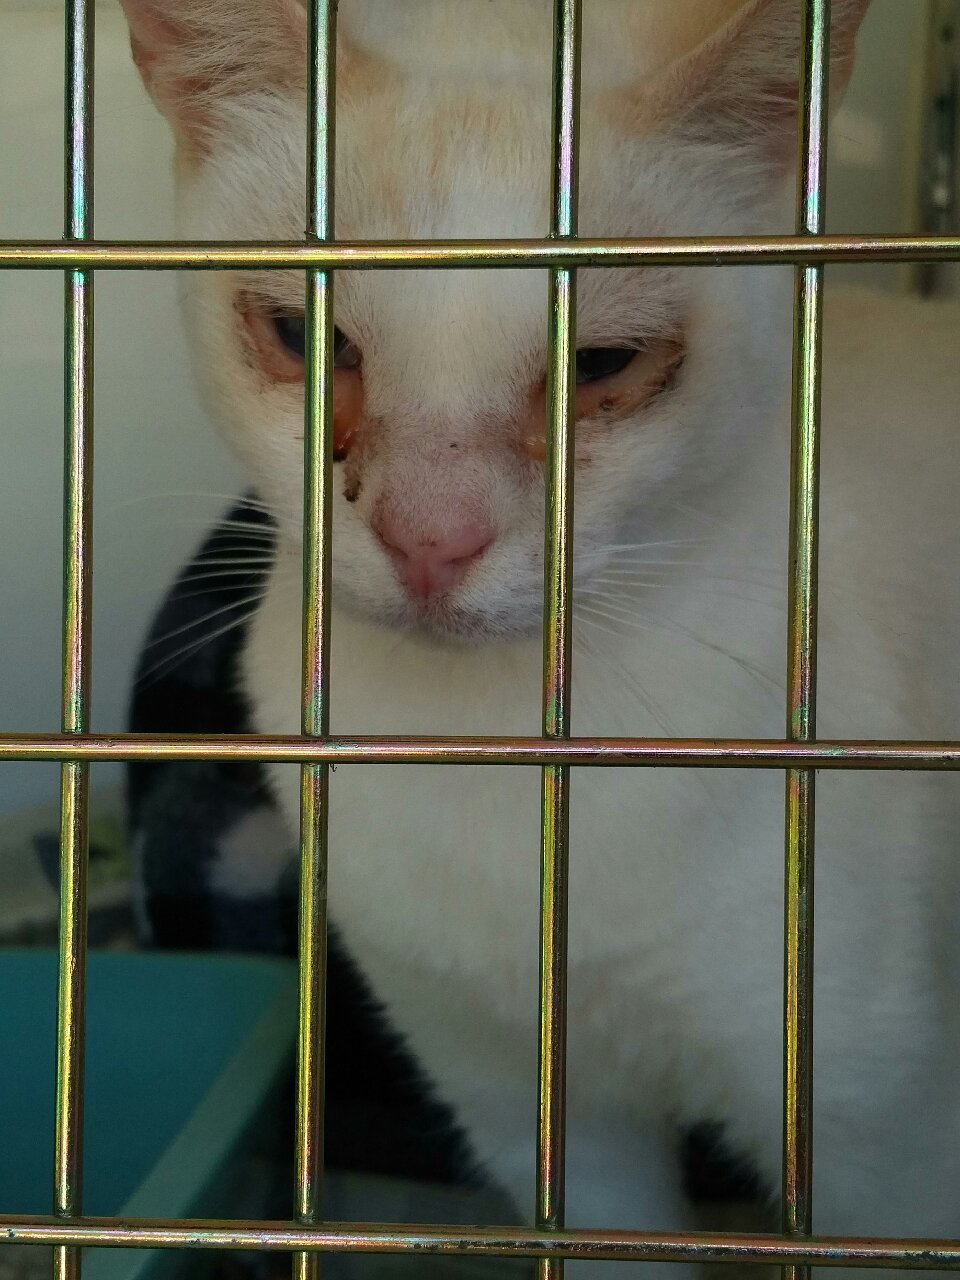 This is Santiago, a rescue cat from Ibiza, whose journey to the UK has been sponsored by Care4Cats